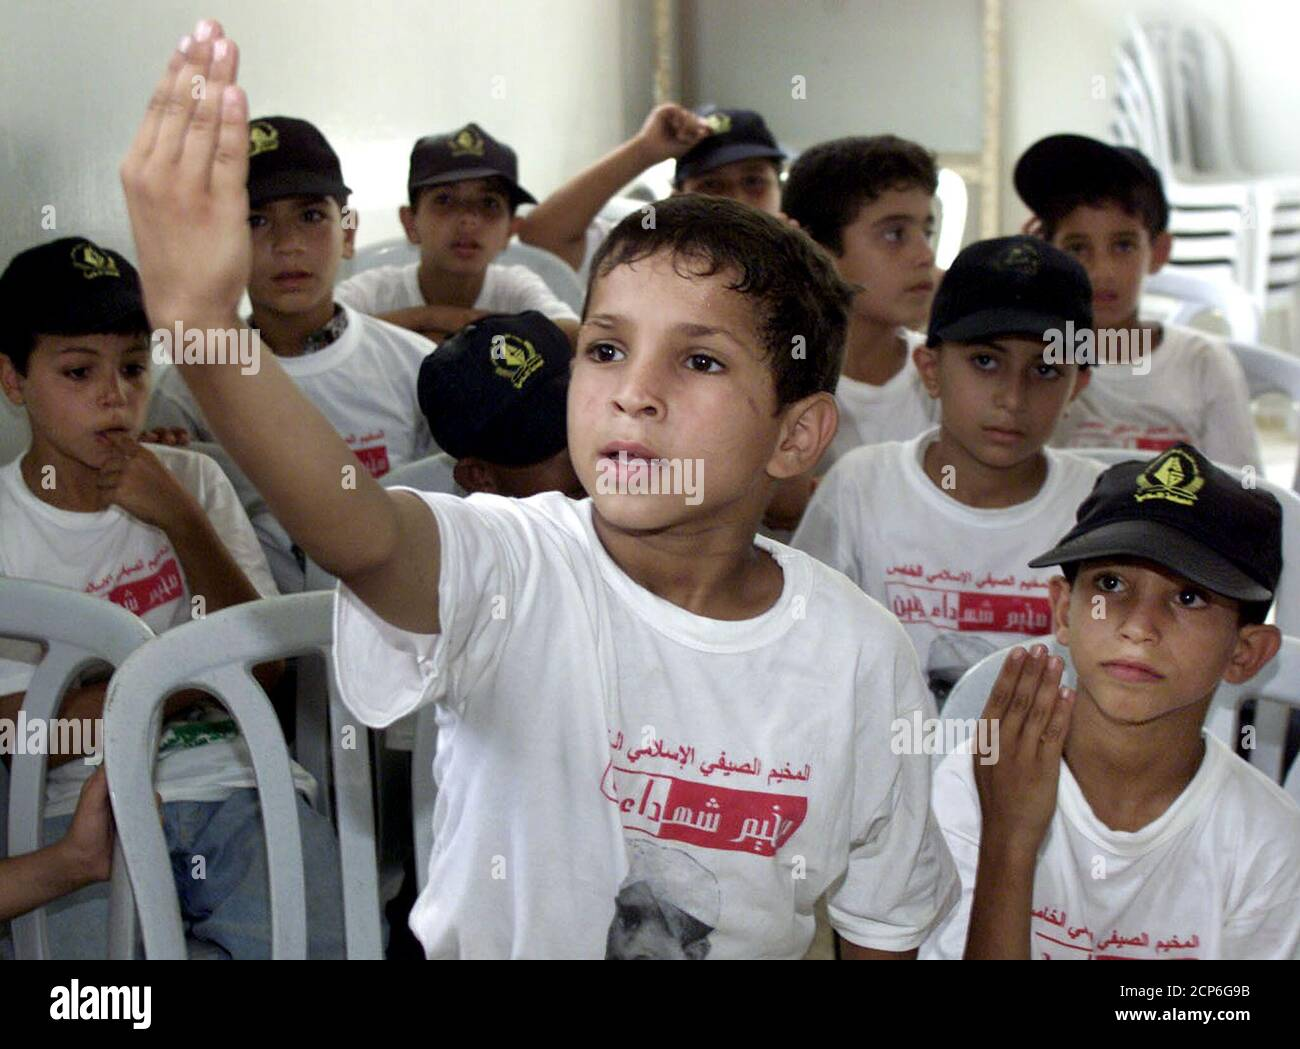 """A Palestinian boy wearing a T-Shirt bearing the words """"The Islamic summer camp"""" attends a summer camp run by the Islamic Jihad in Gaza July 16, 2002. Summer camps for Palestinian children dropped weapons training this year after a parental uproar over child suicide bombers. But some camps, mainly Islamic ones, still preached the idea of destroying Israel and at least one handed out toy rifles to children for an exercise in attacking a model in miniature of a Jewish settlement in occupied territory. TO GO WITH STORY BC-MIDEAST-PALESTINIANS-CAMPS REUTERS/Suhaib Salem  SJS/CLH/ Stock Photo"""